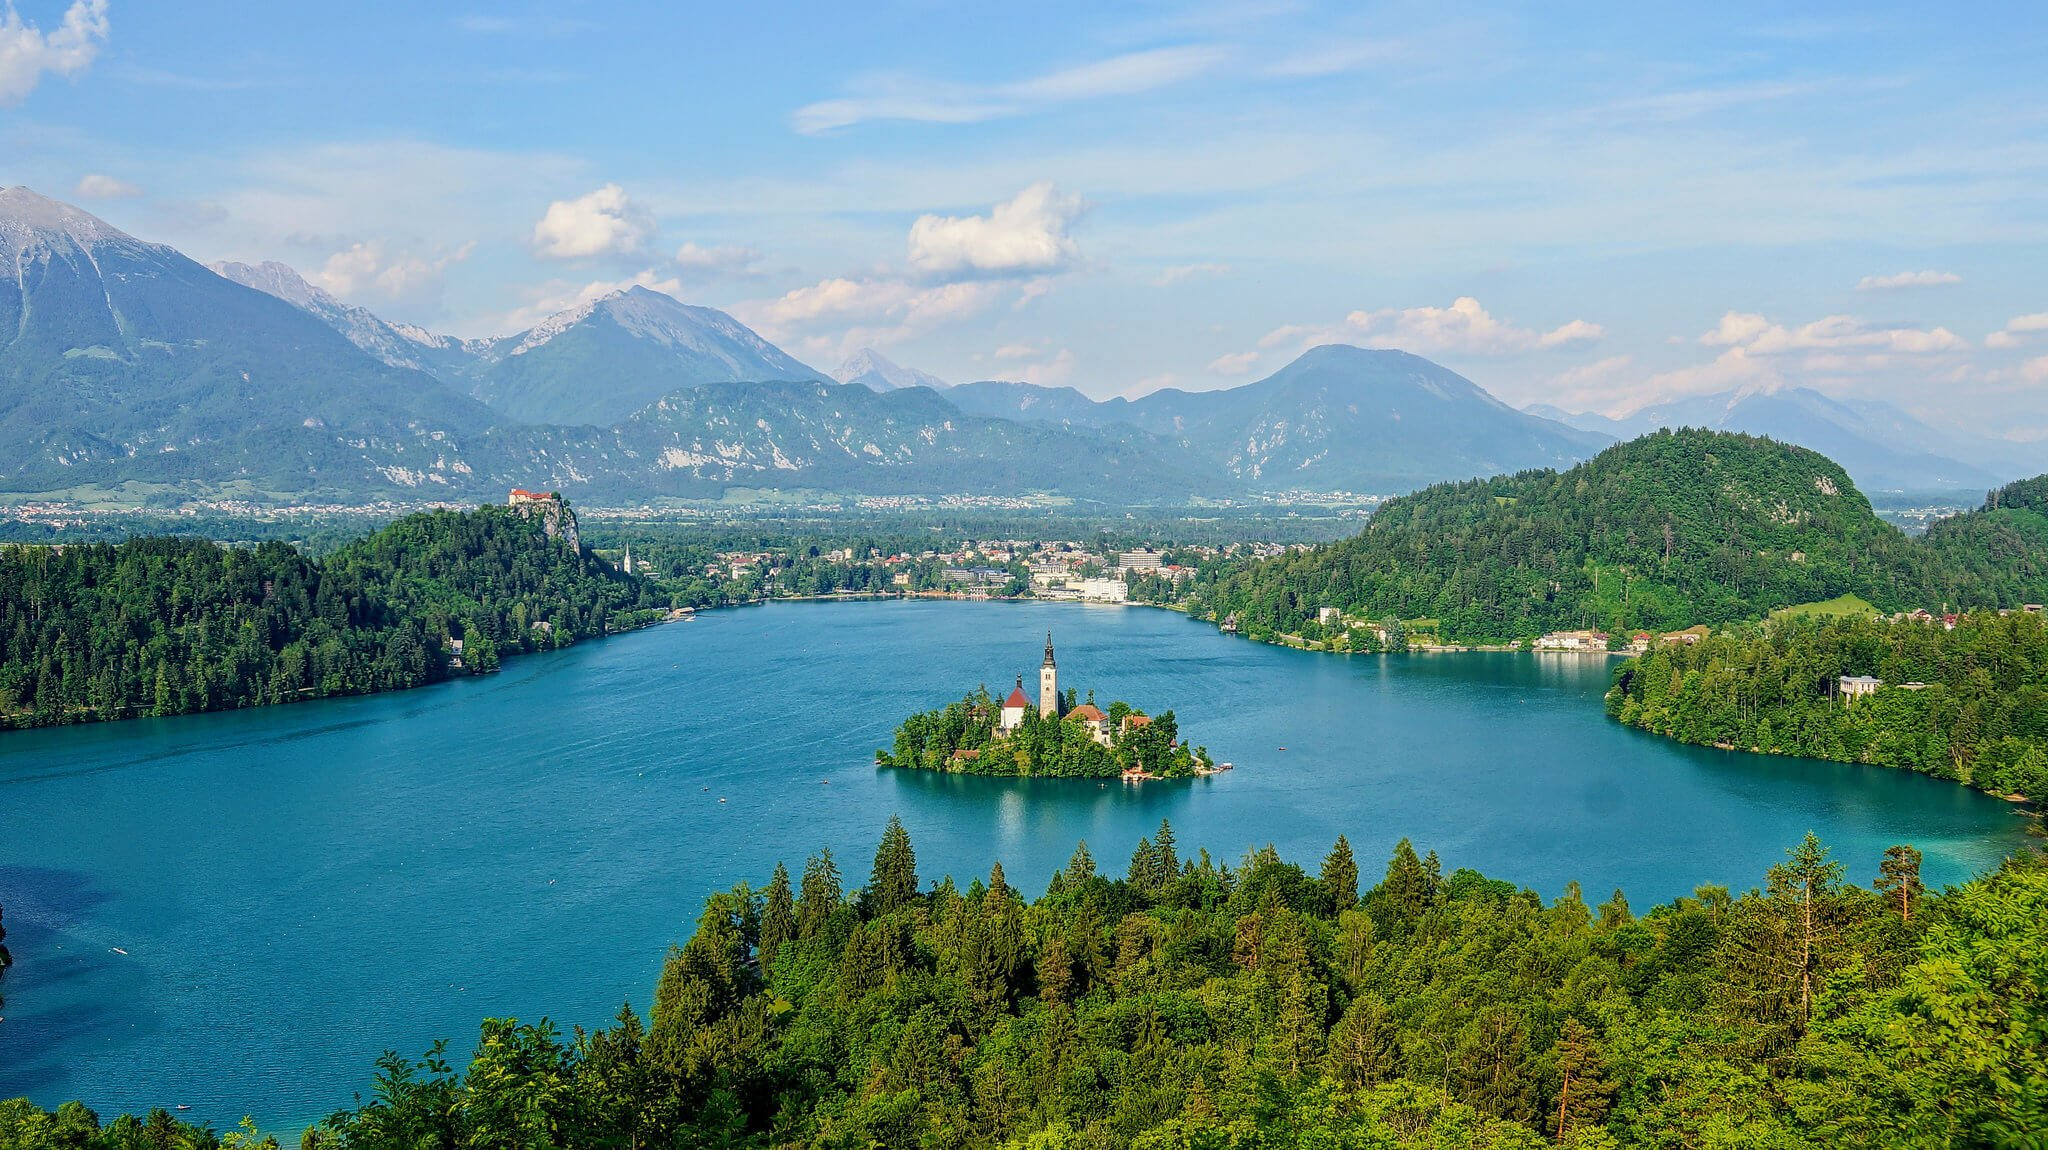 bled slovenia - Slovenia Travel Blog